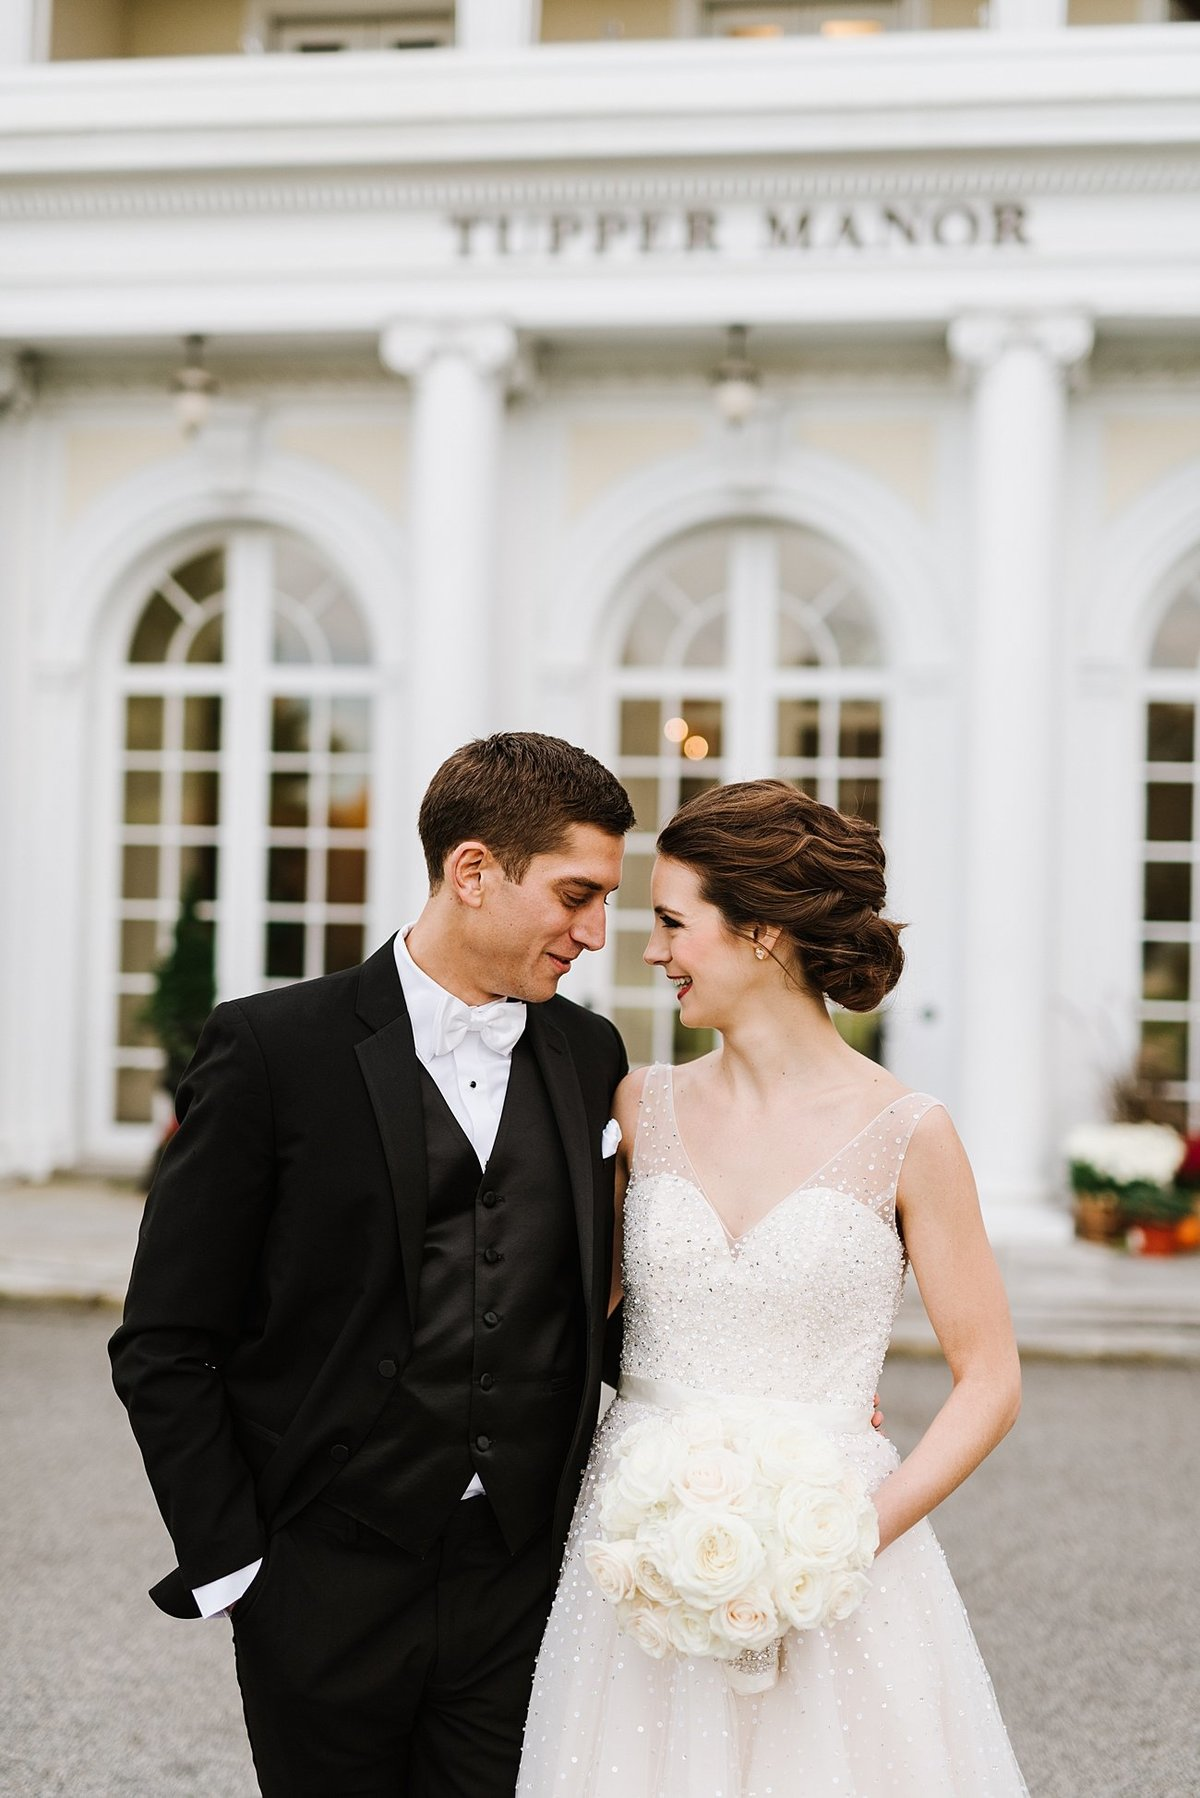 tupper-manor-wedding-photographer-photo_0010